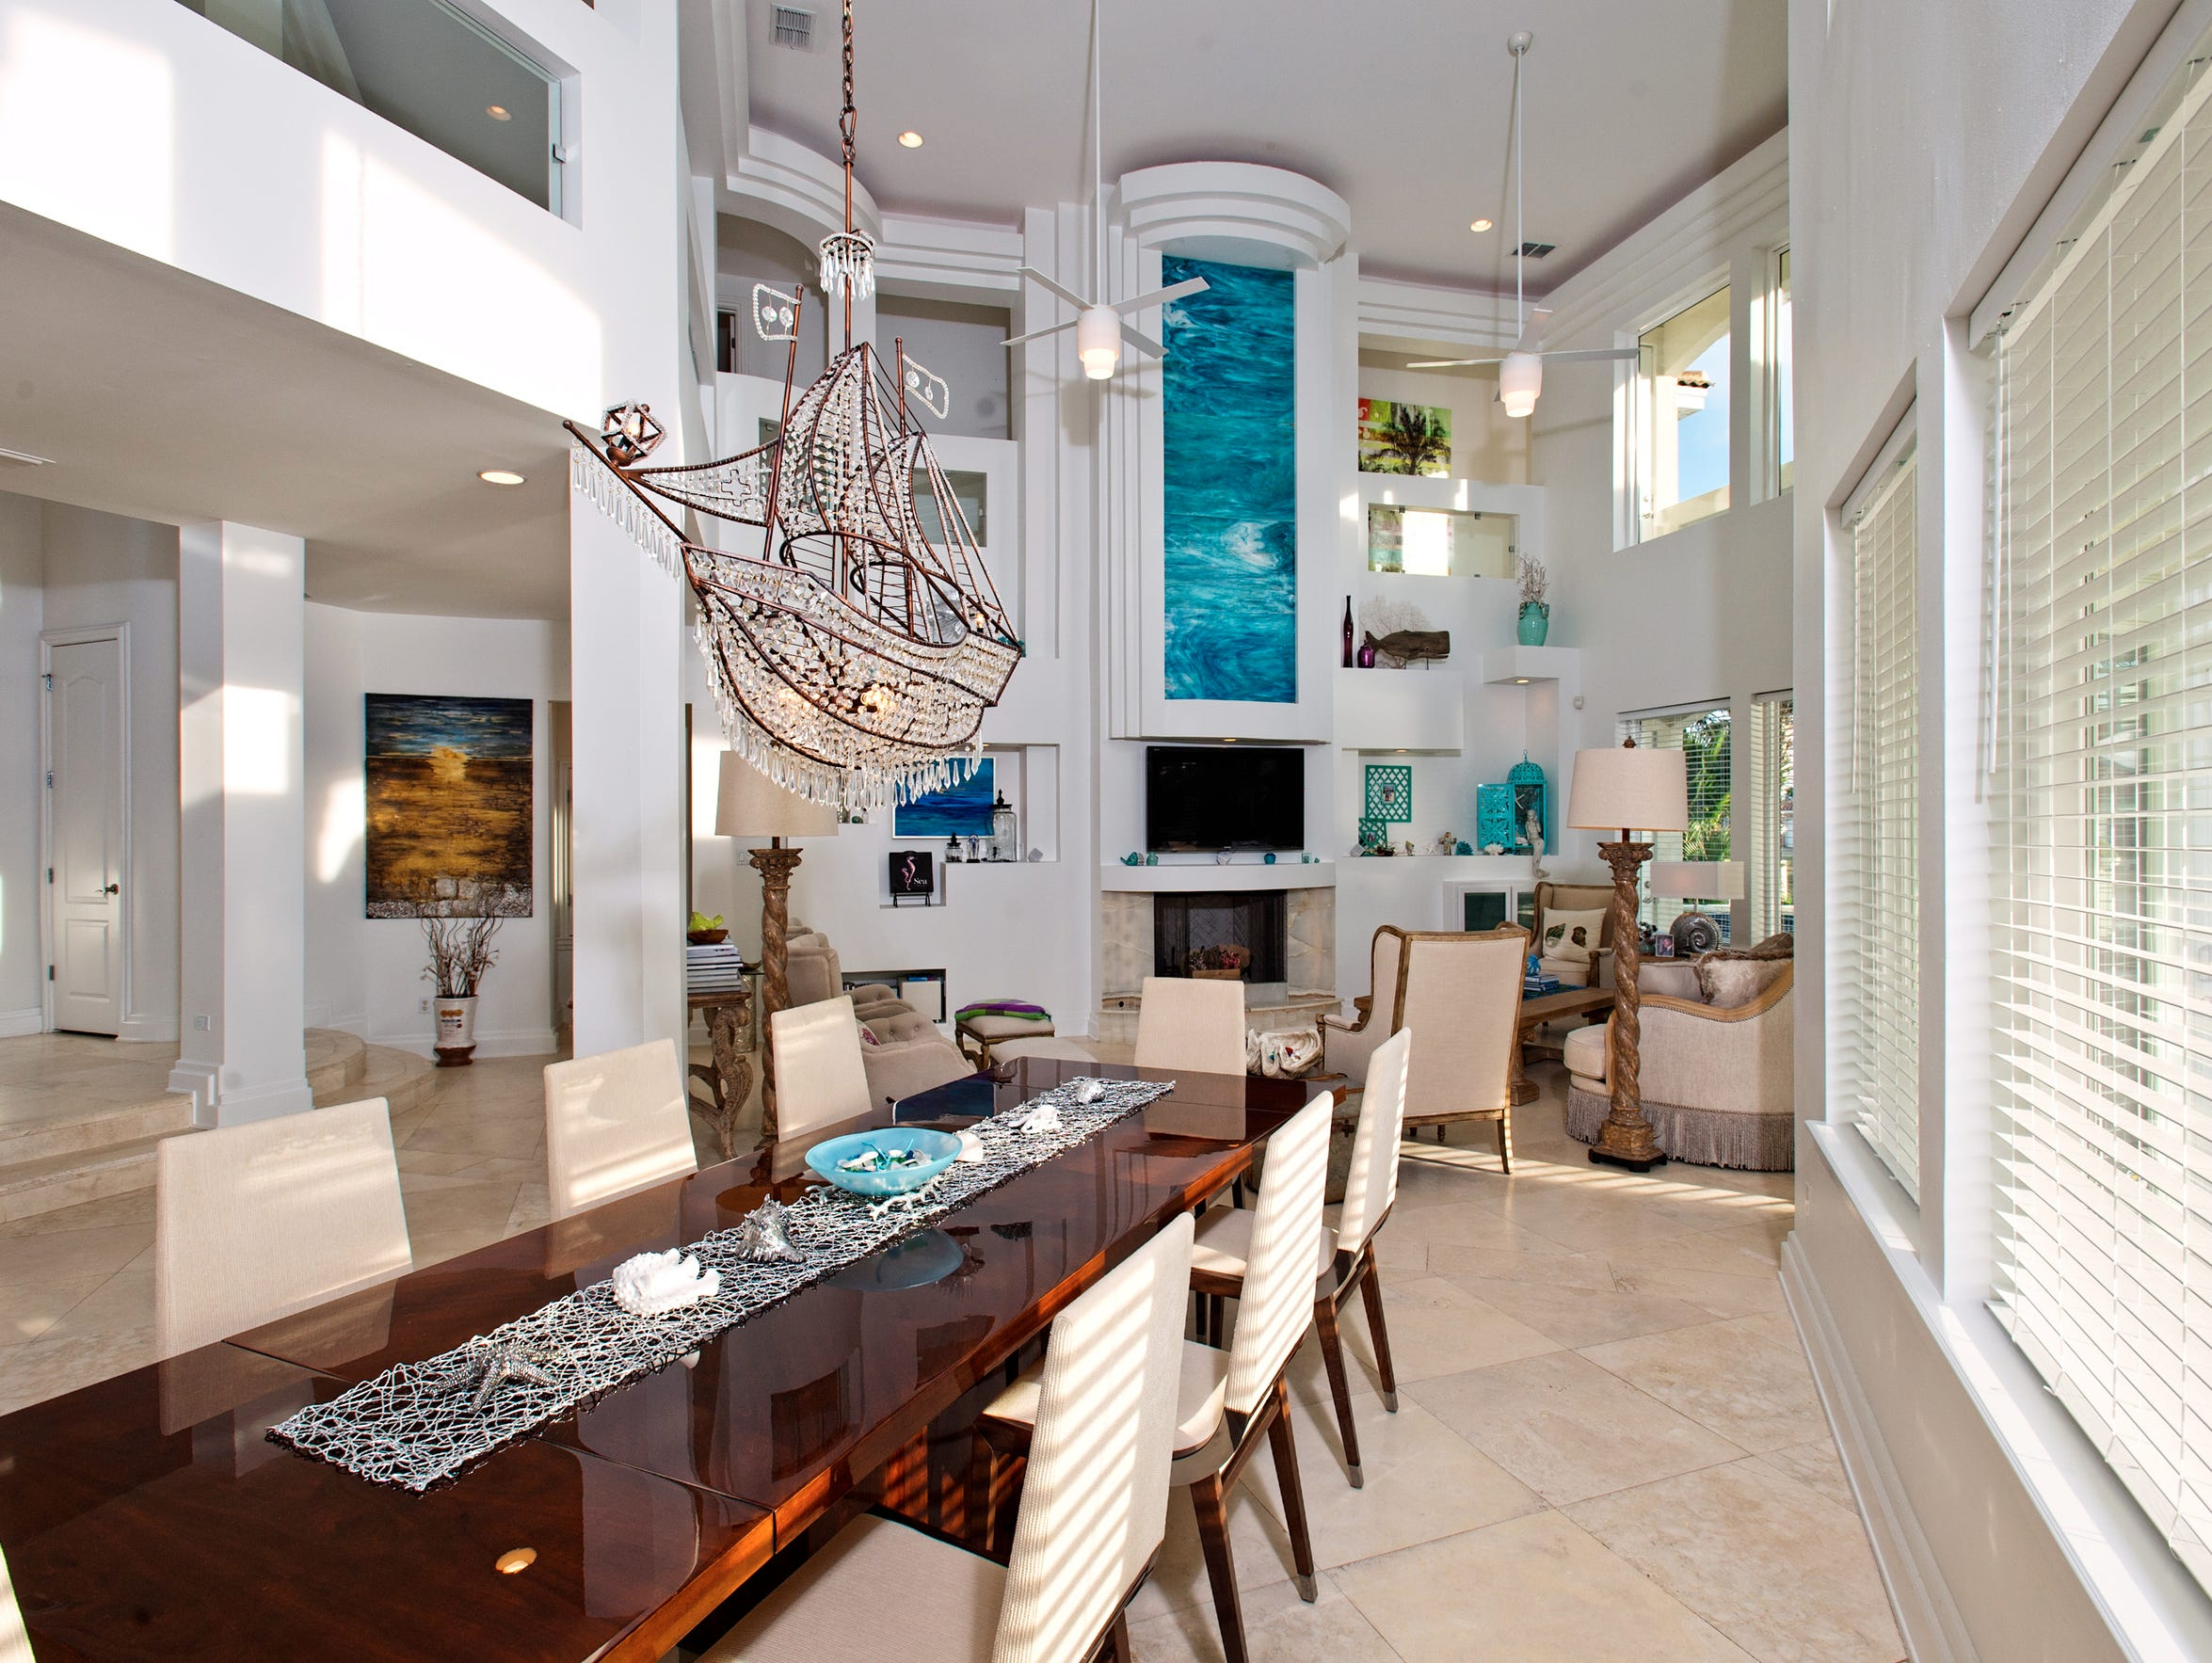 An amazing crystal ship chandelier hangs over the dining